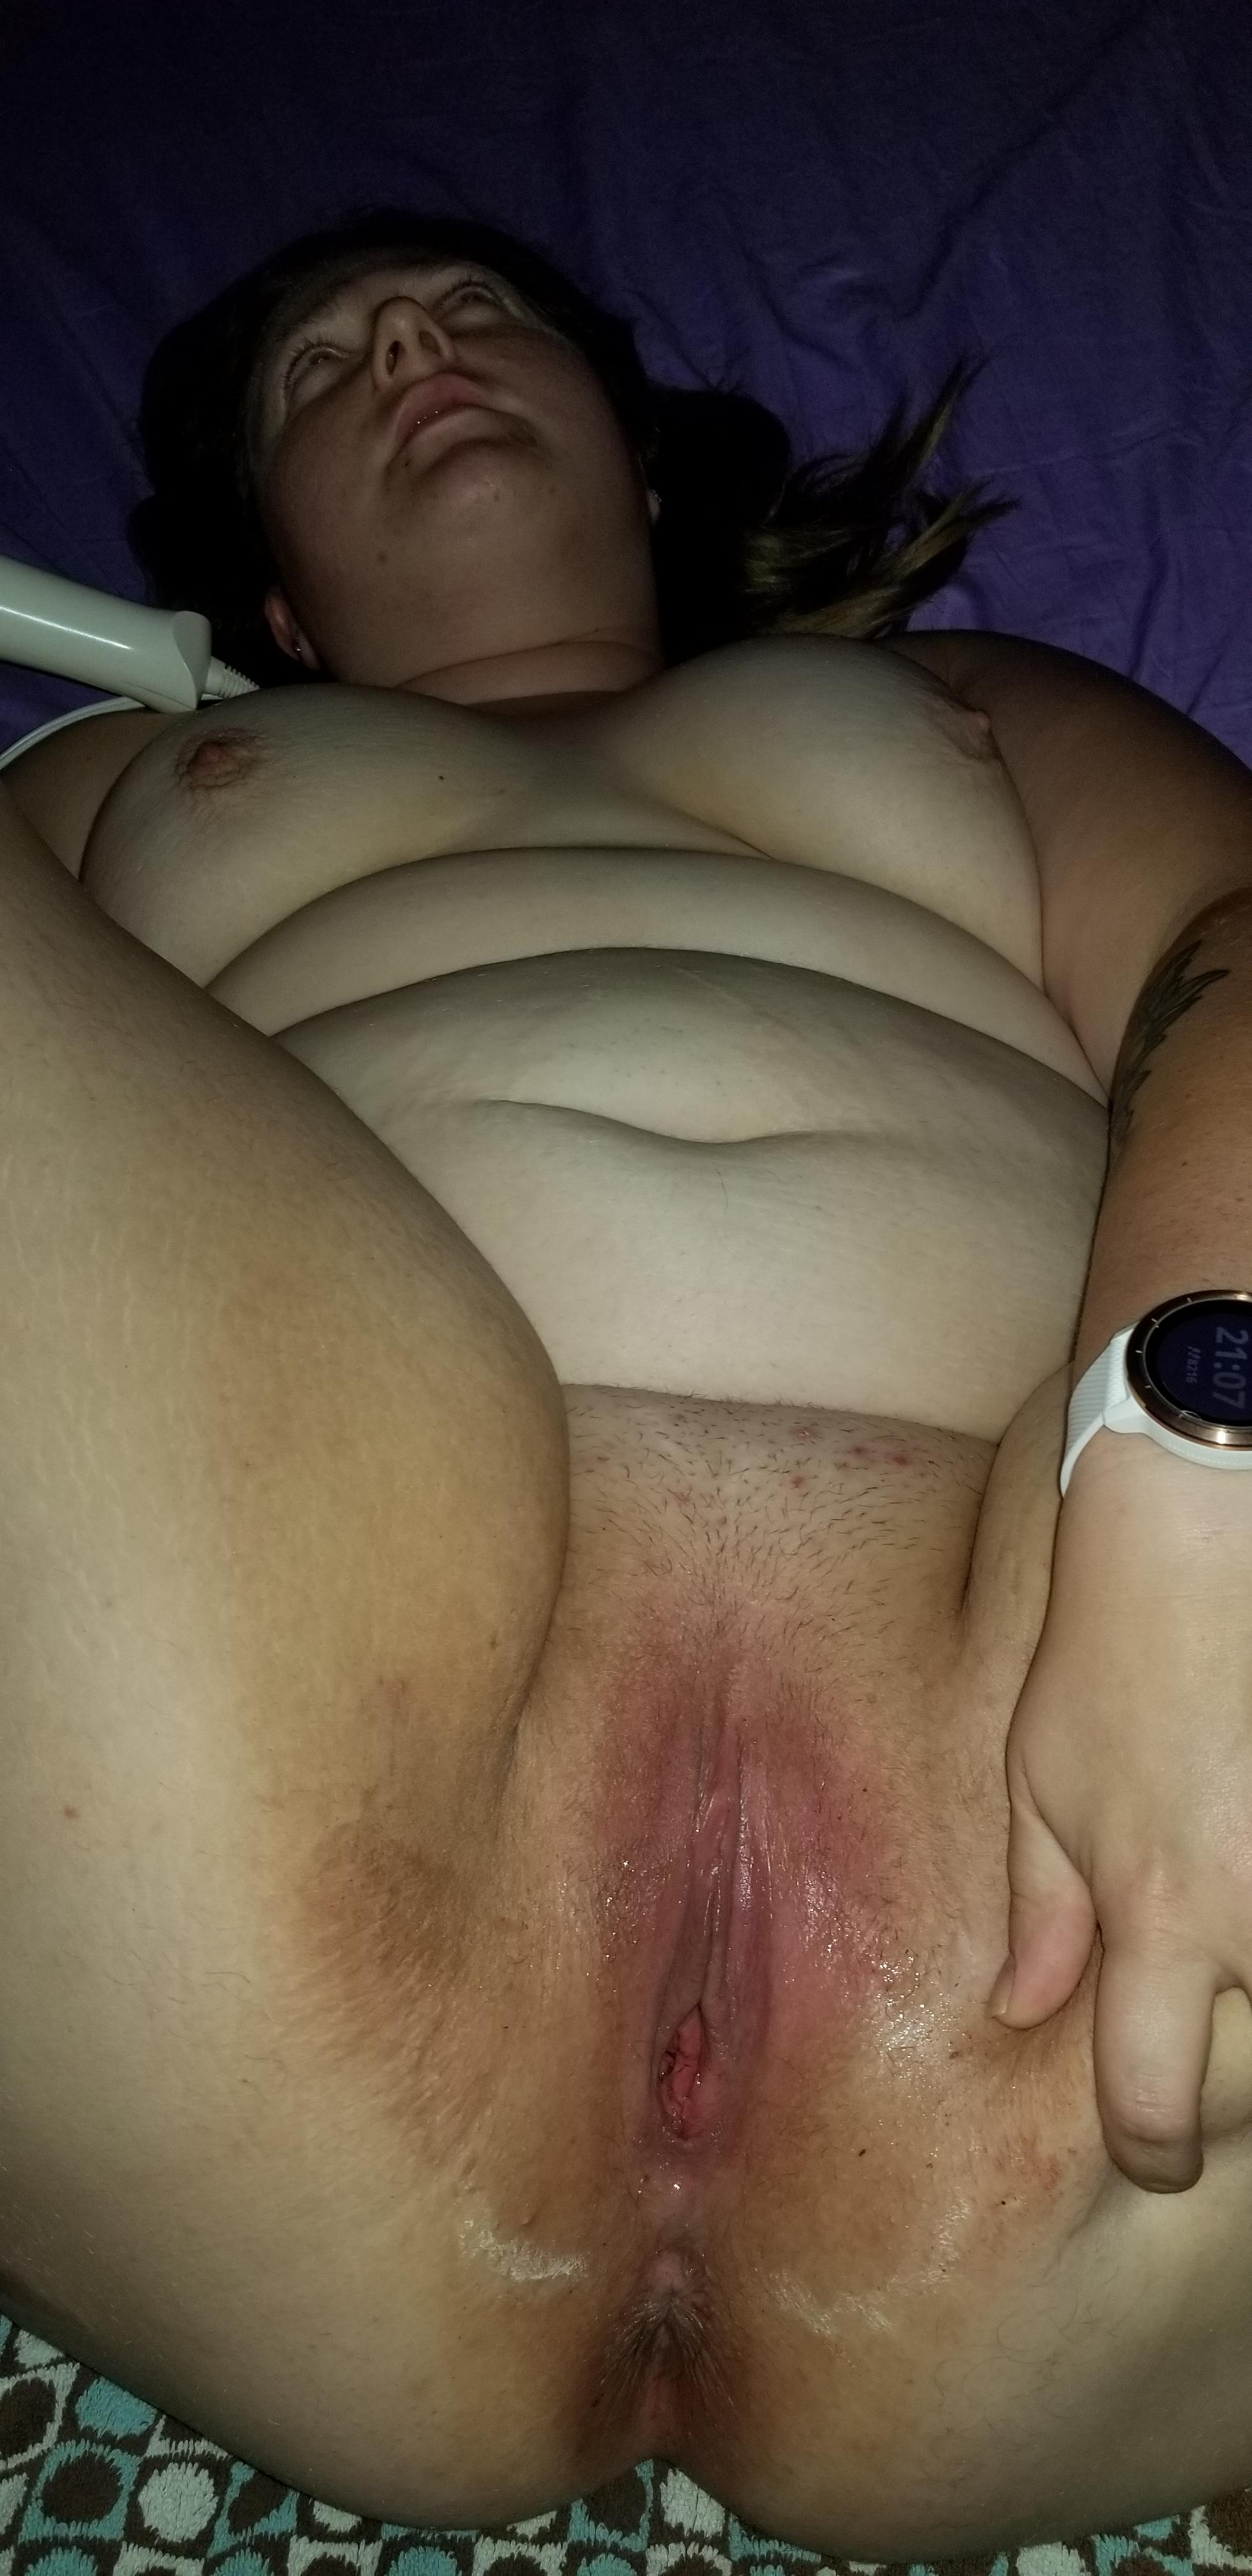 30 Year Old Porn wet 30 year old pussy porn pic - eporner